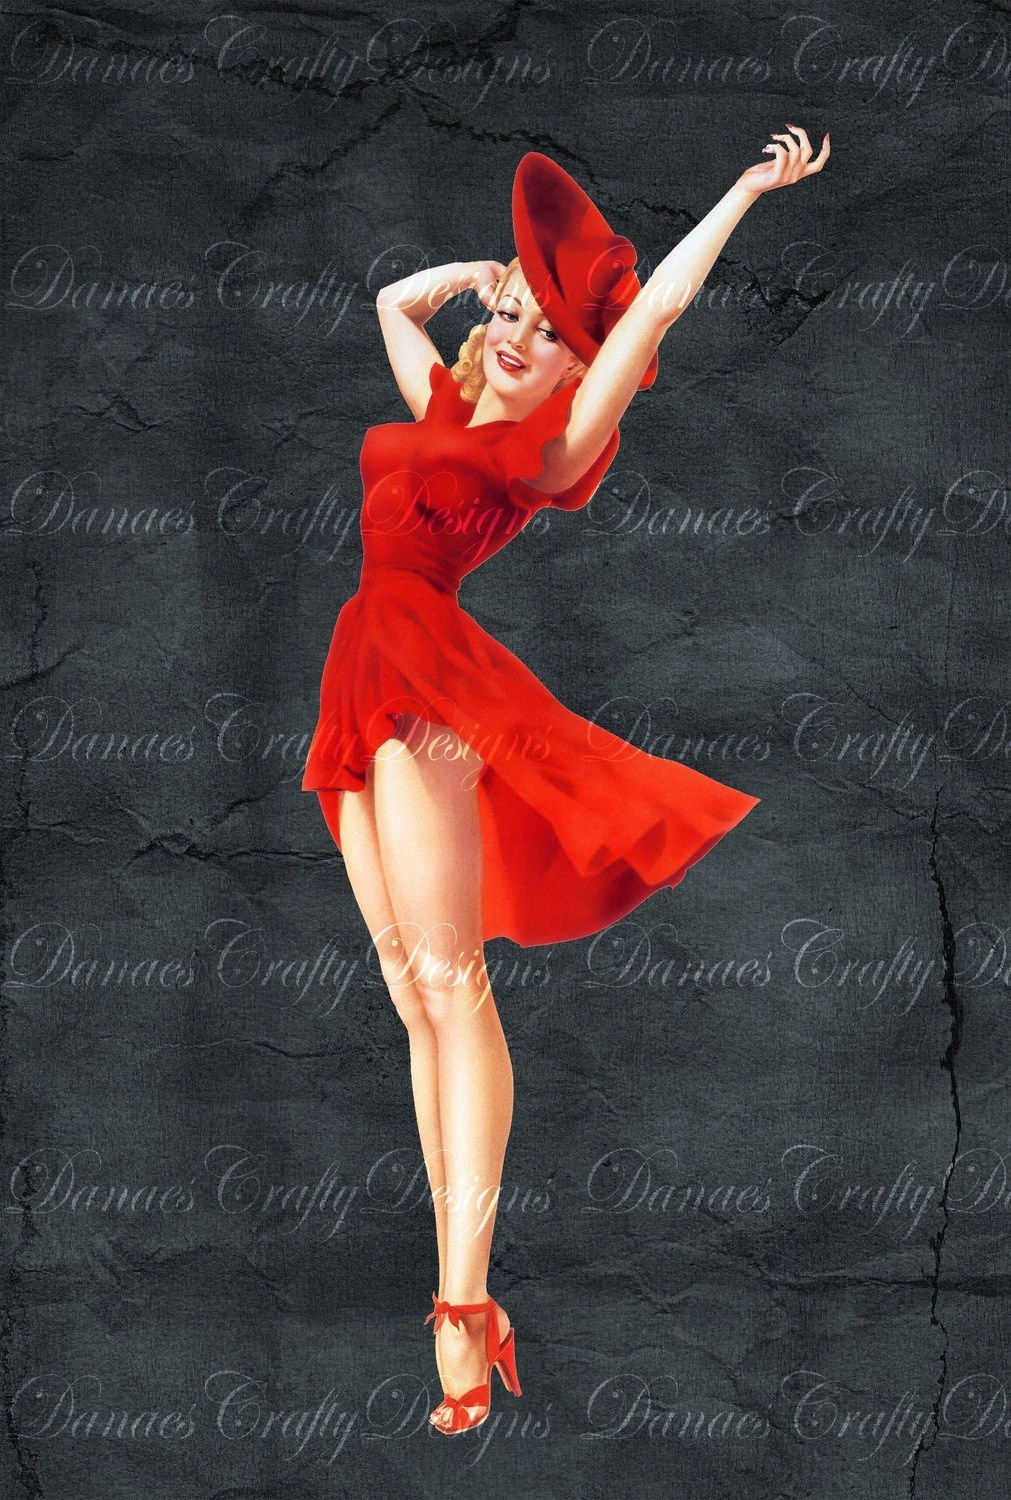 Vintage Pin Up Girl on Charcoal Background LADY IN RED PU25